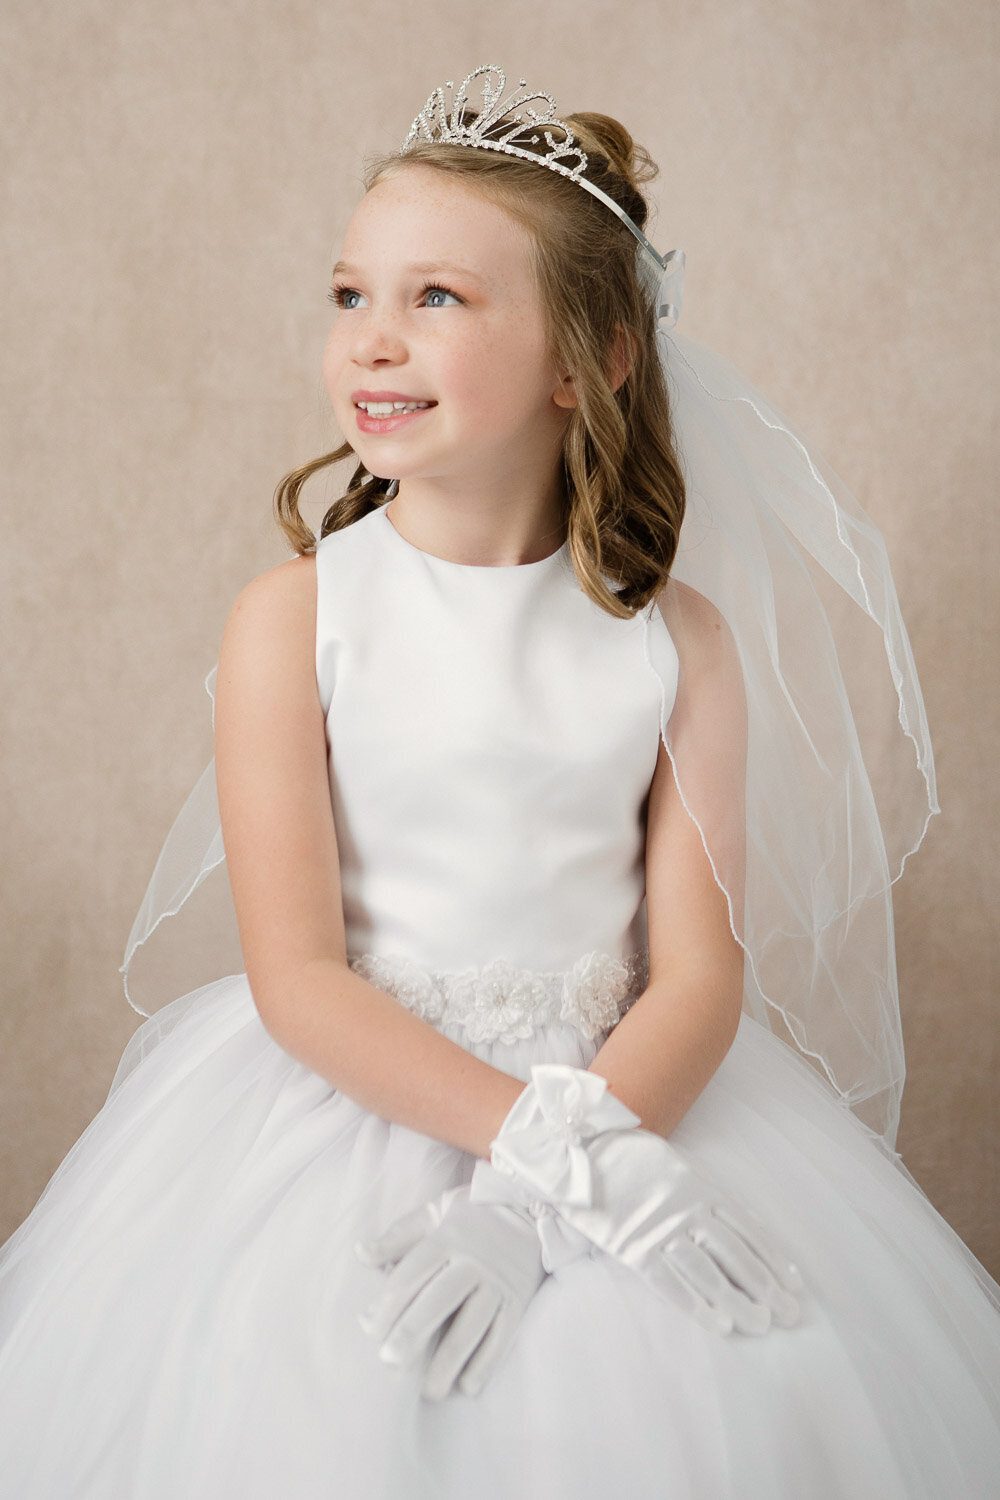 Professional little beauty portrait of girl in white dress and tiara